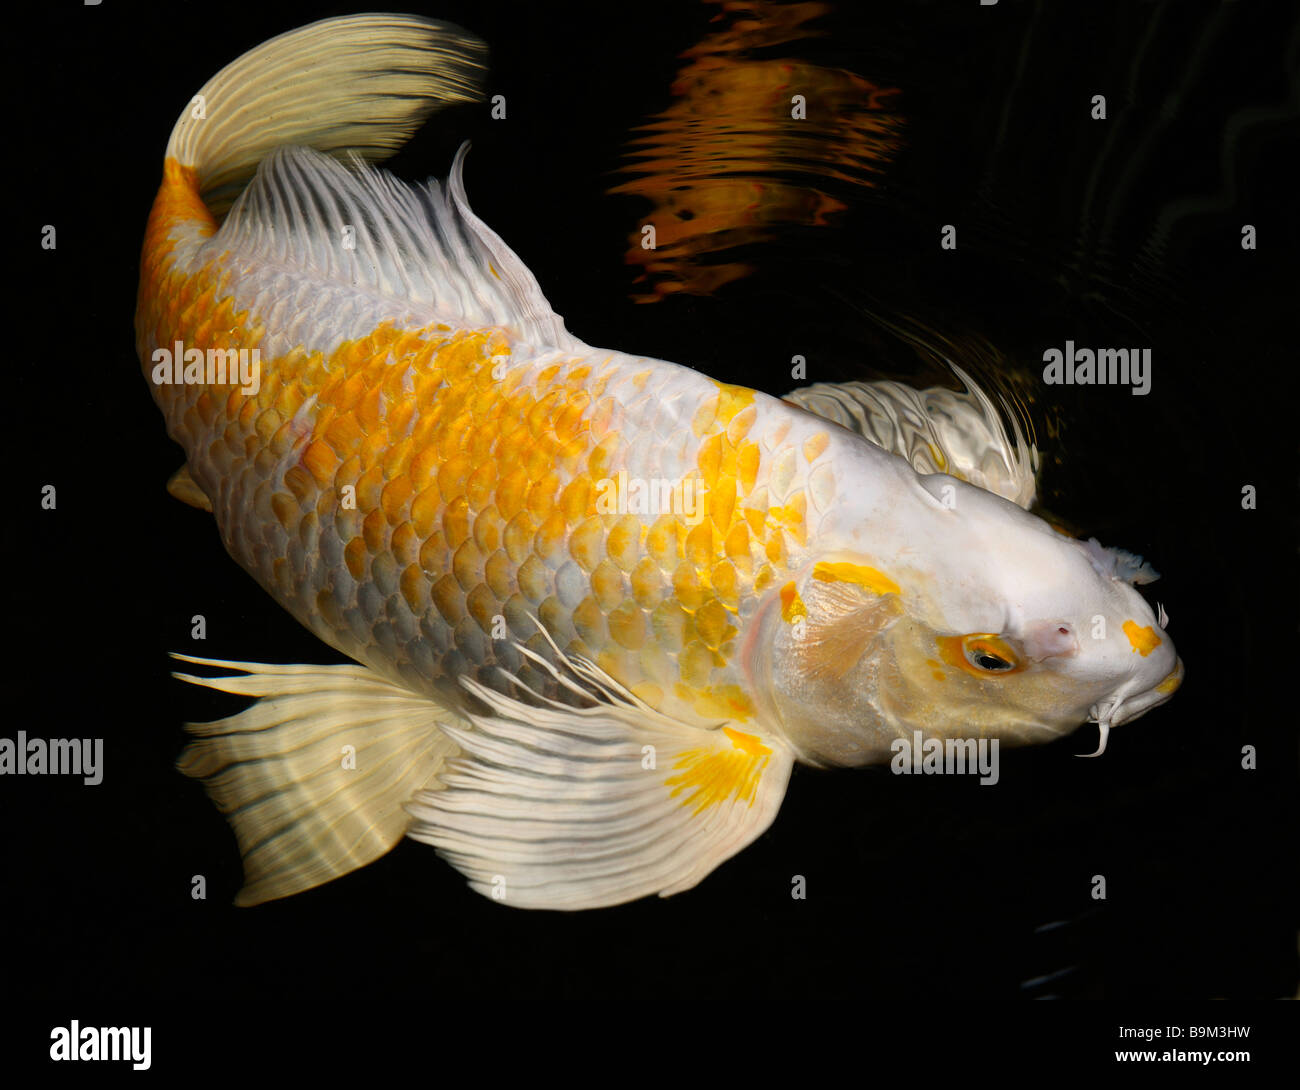 White And Yellow Yamabuki Hariwake Butterfly Koi Fish